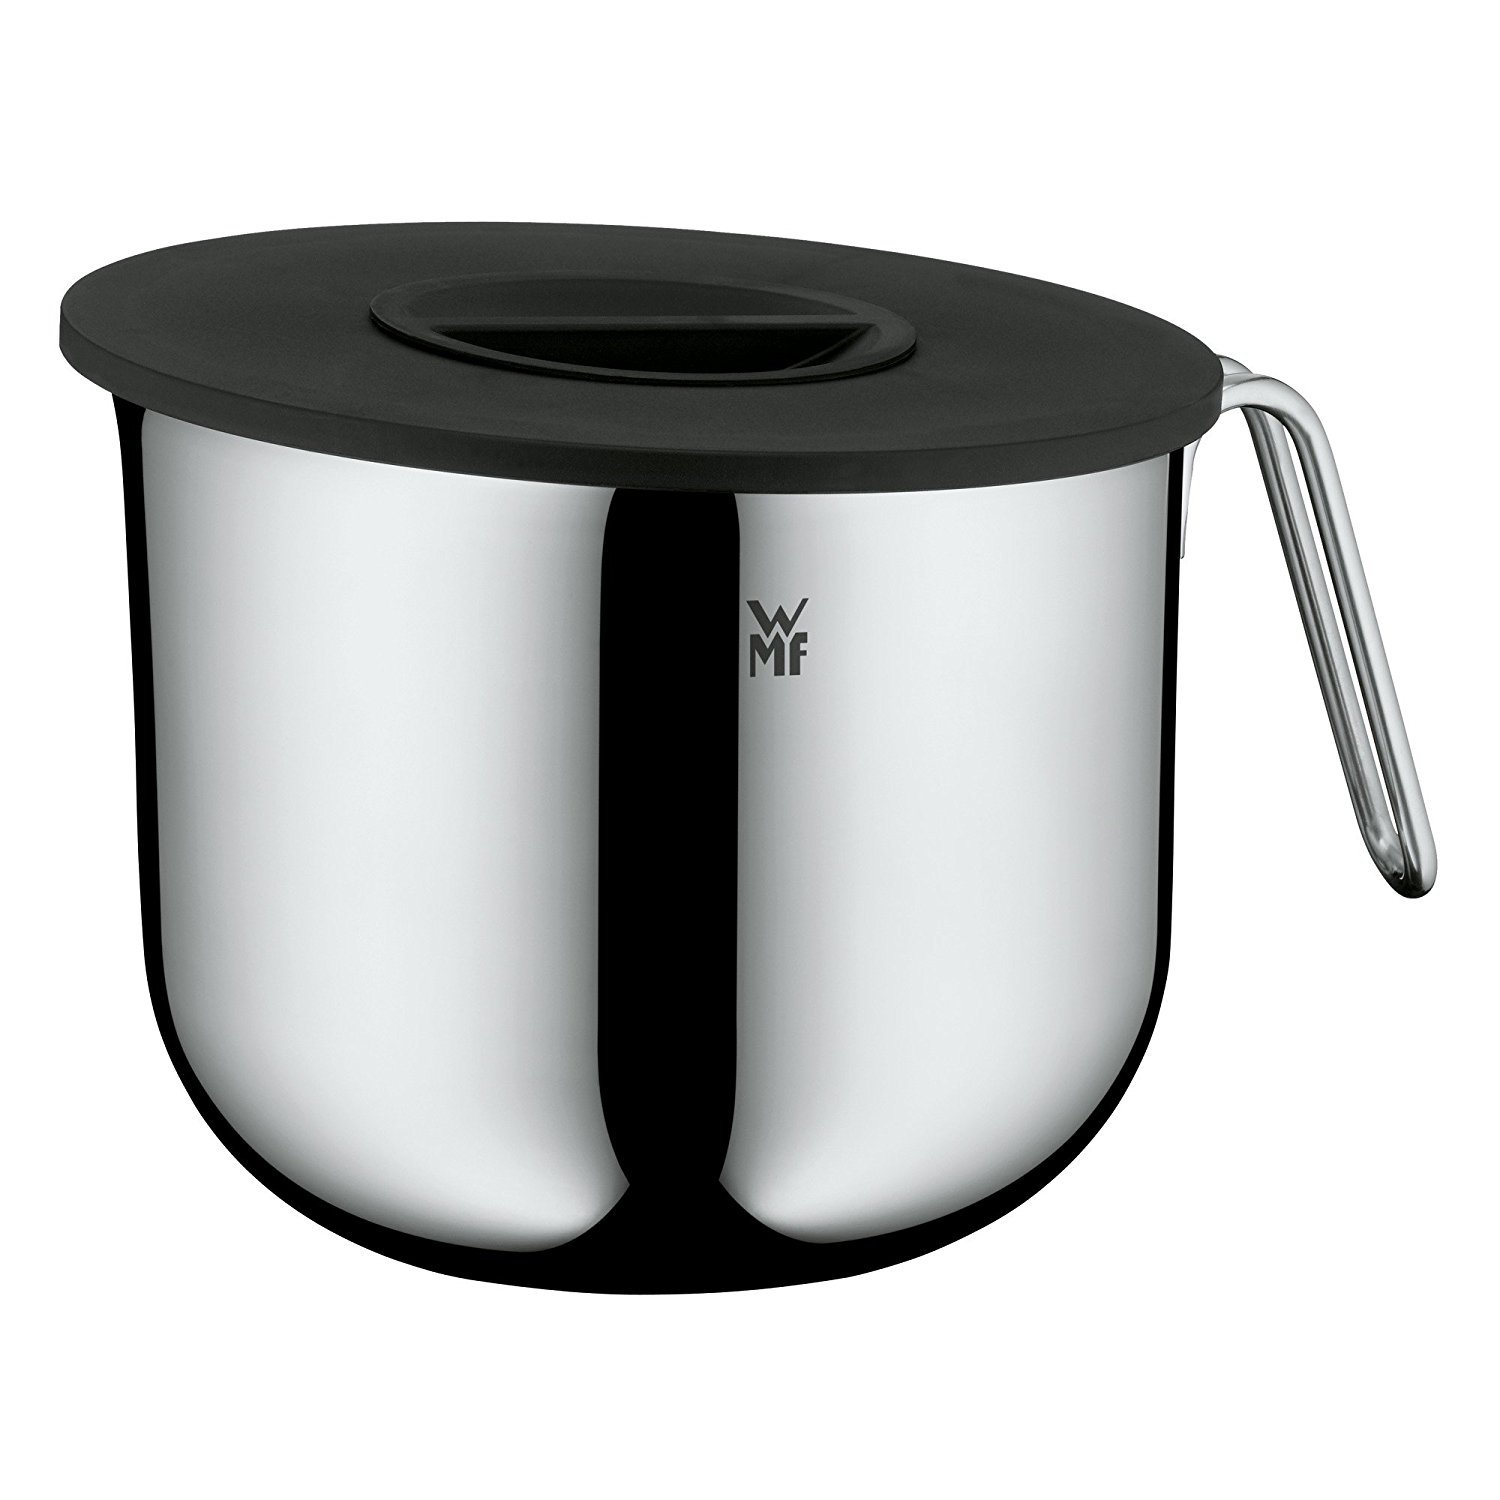 Онлайн каталог PROMENU: Миска с крышкой WMF KITCHEN AND MIXING BOWLS, 2,5 л, высота 16 см, серебристый                               06 4566 6030